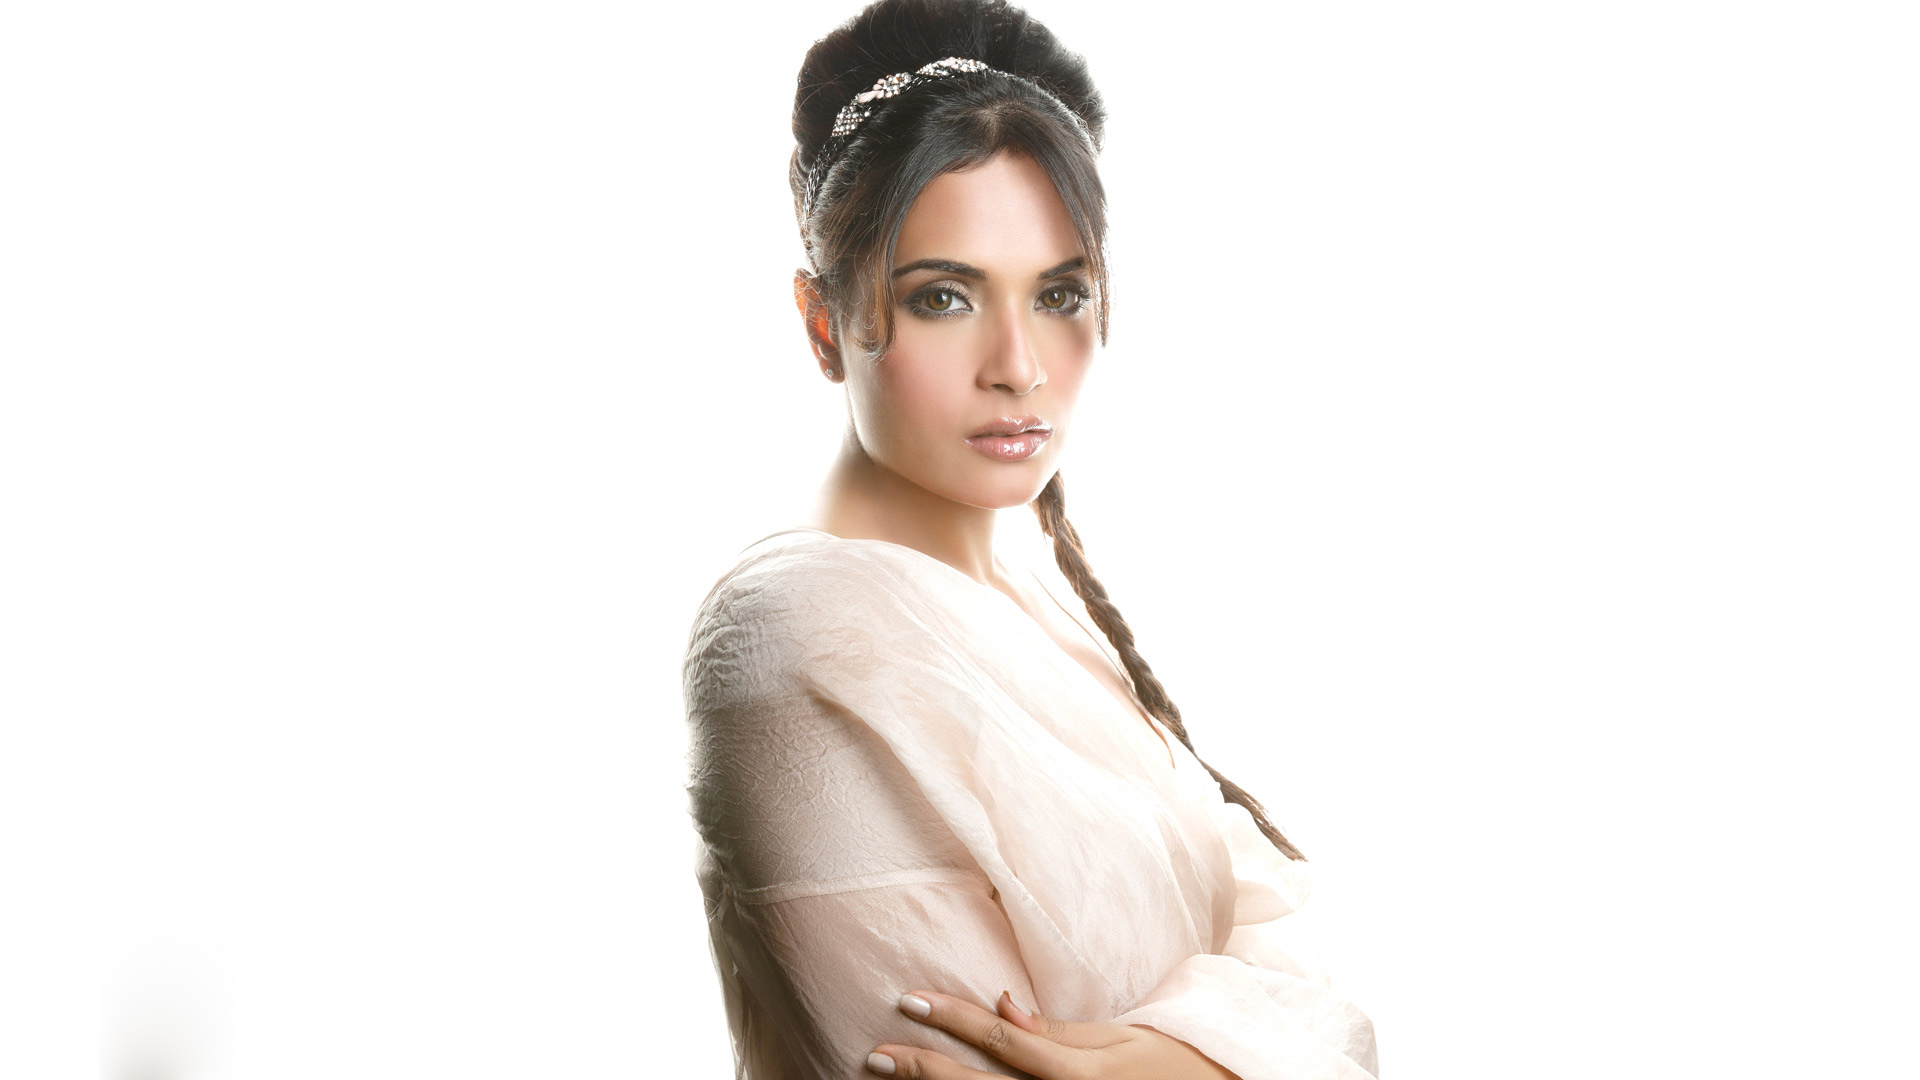 richa chadda hd wallpapers • popopics